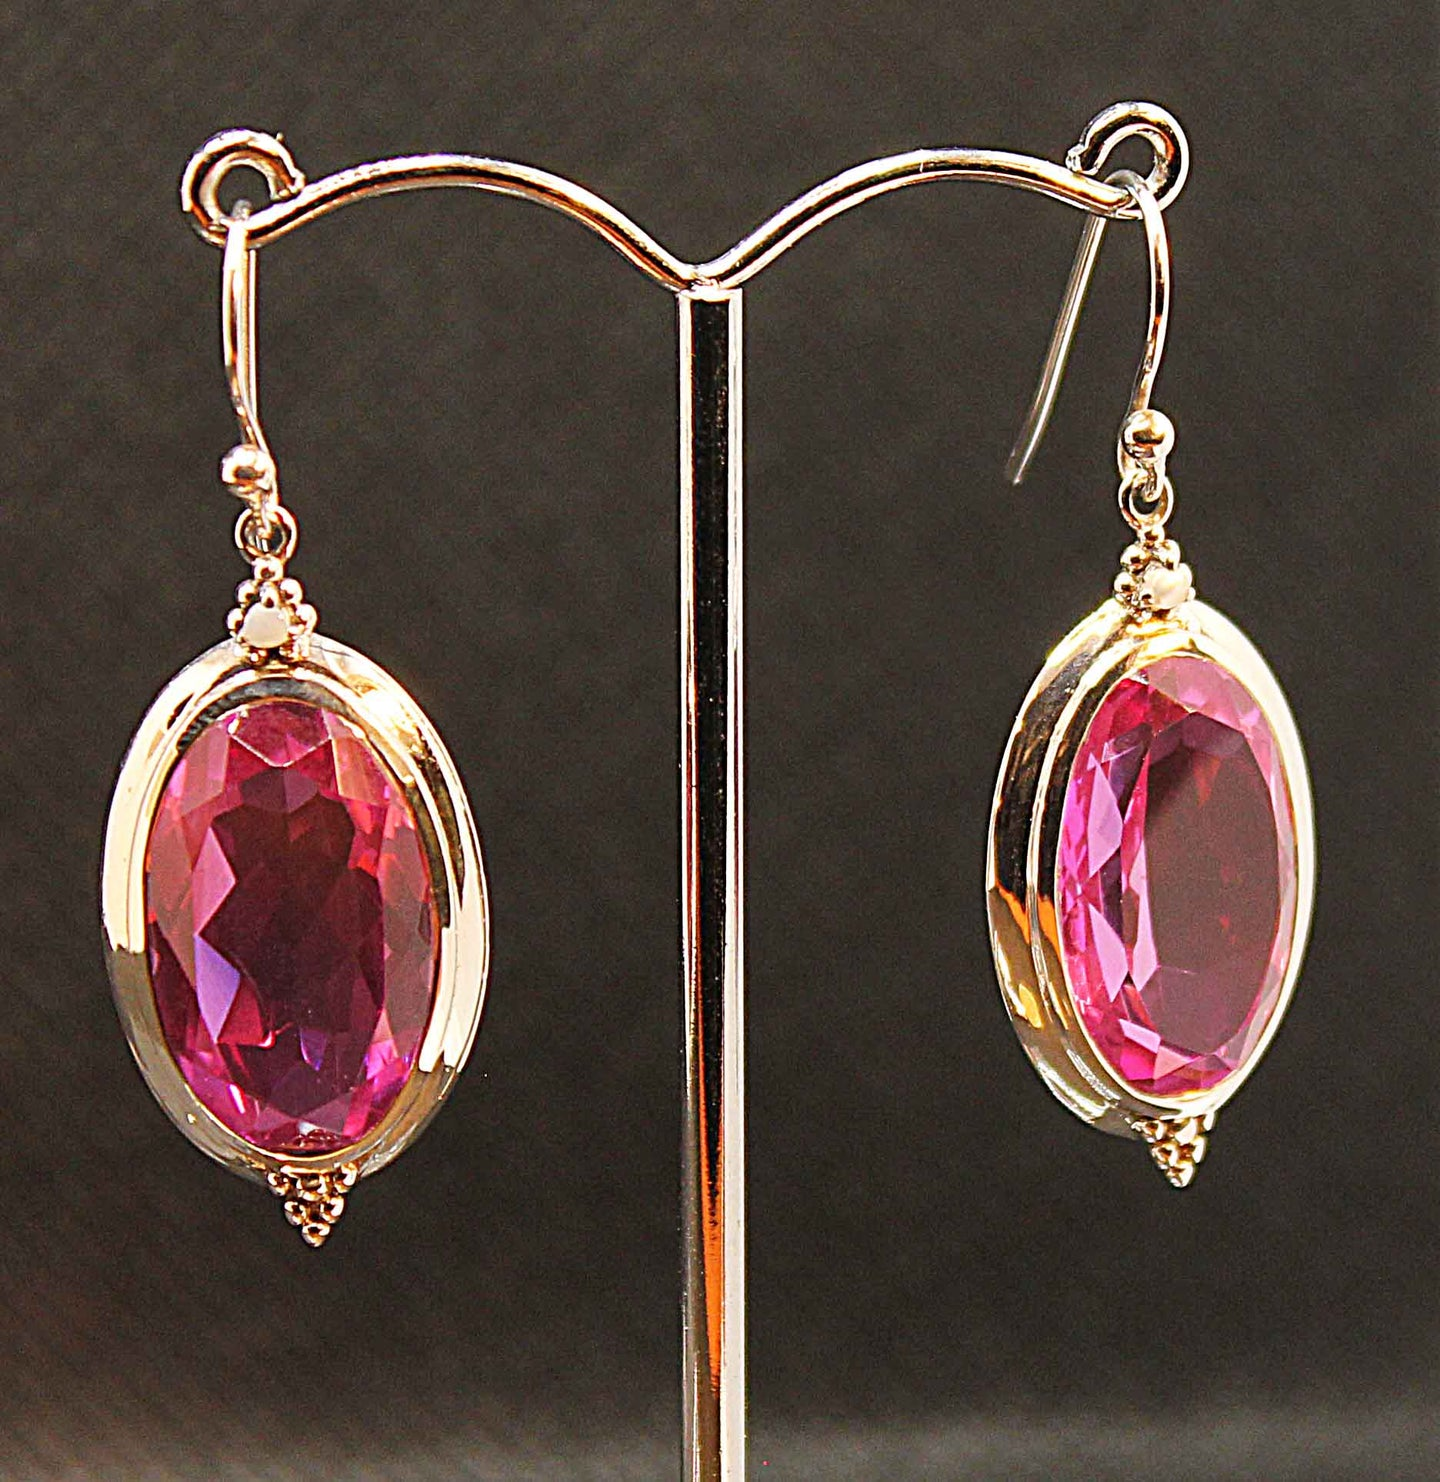 Stunning top quality pink quartz earring in sterling silver